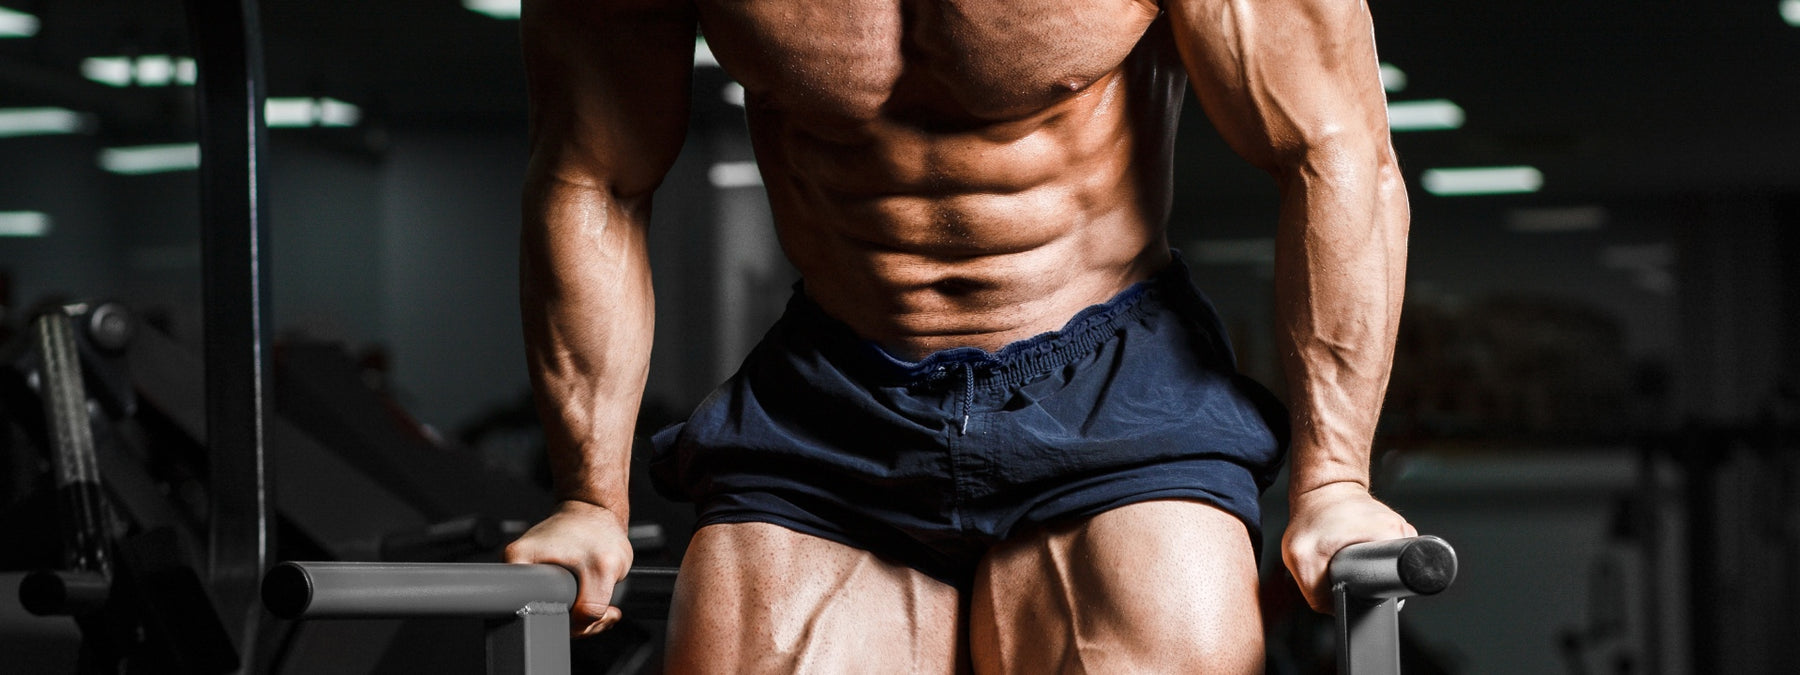 Shredded Abs Year-Round: Is the Cost Worth It?